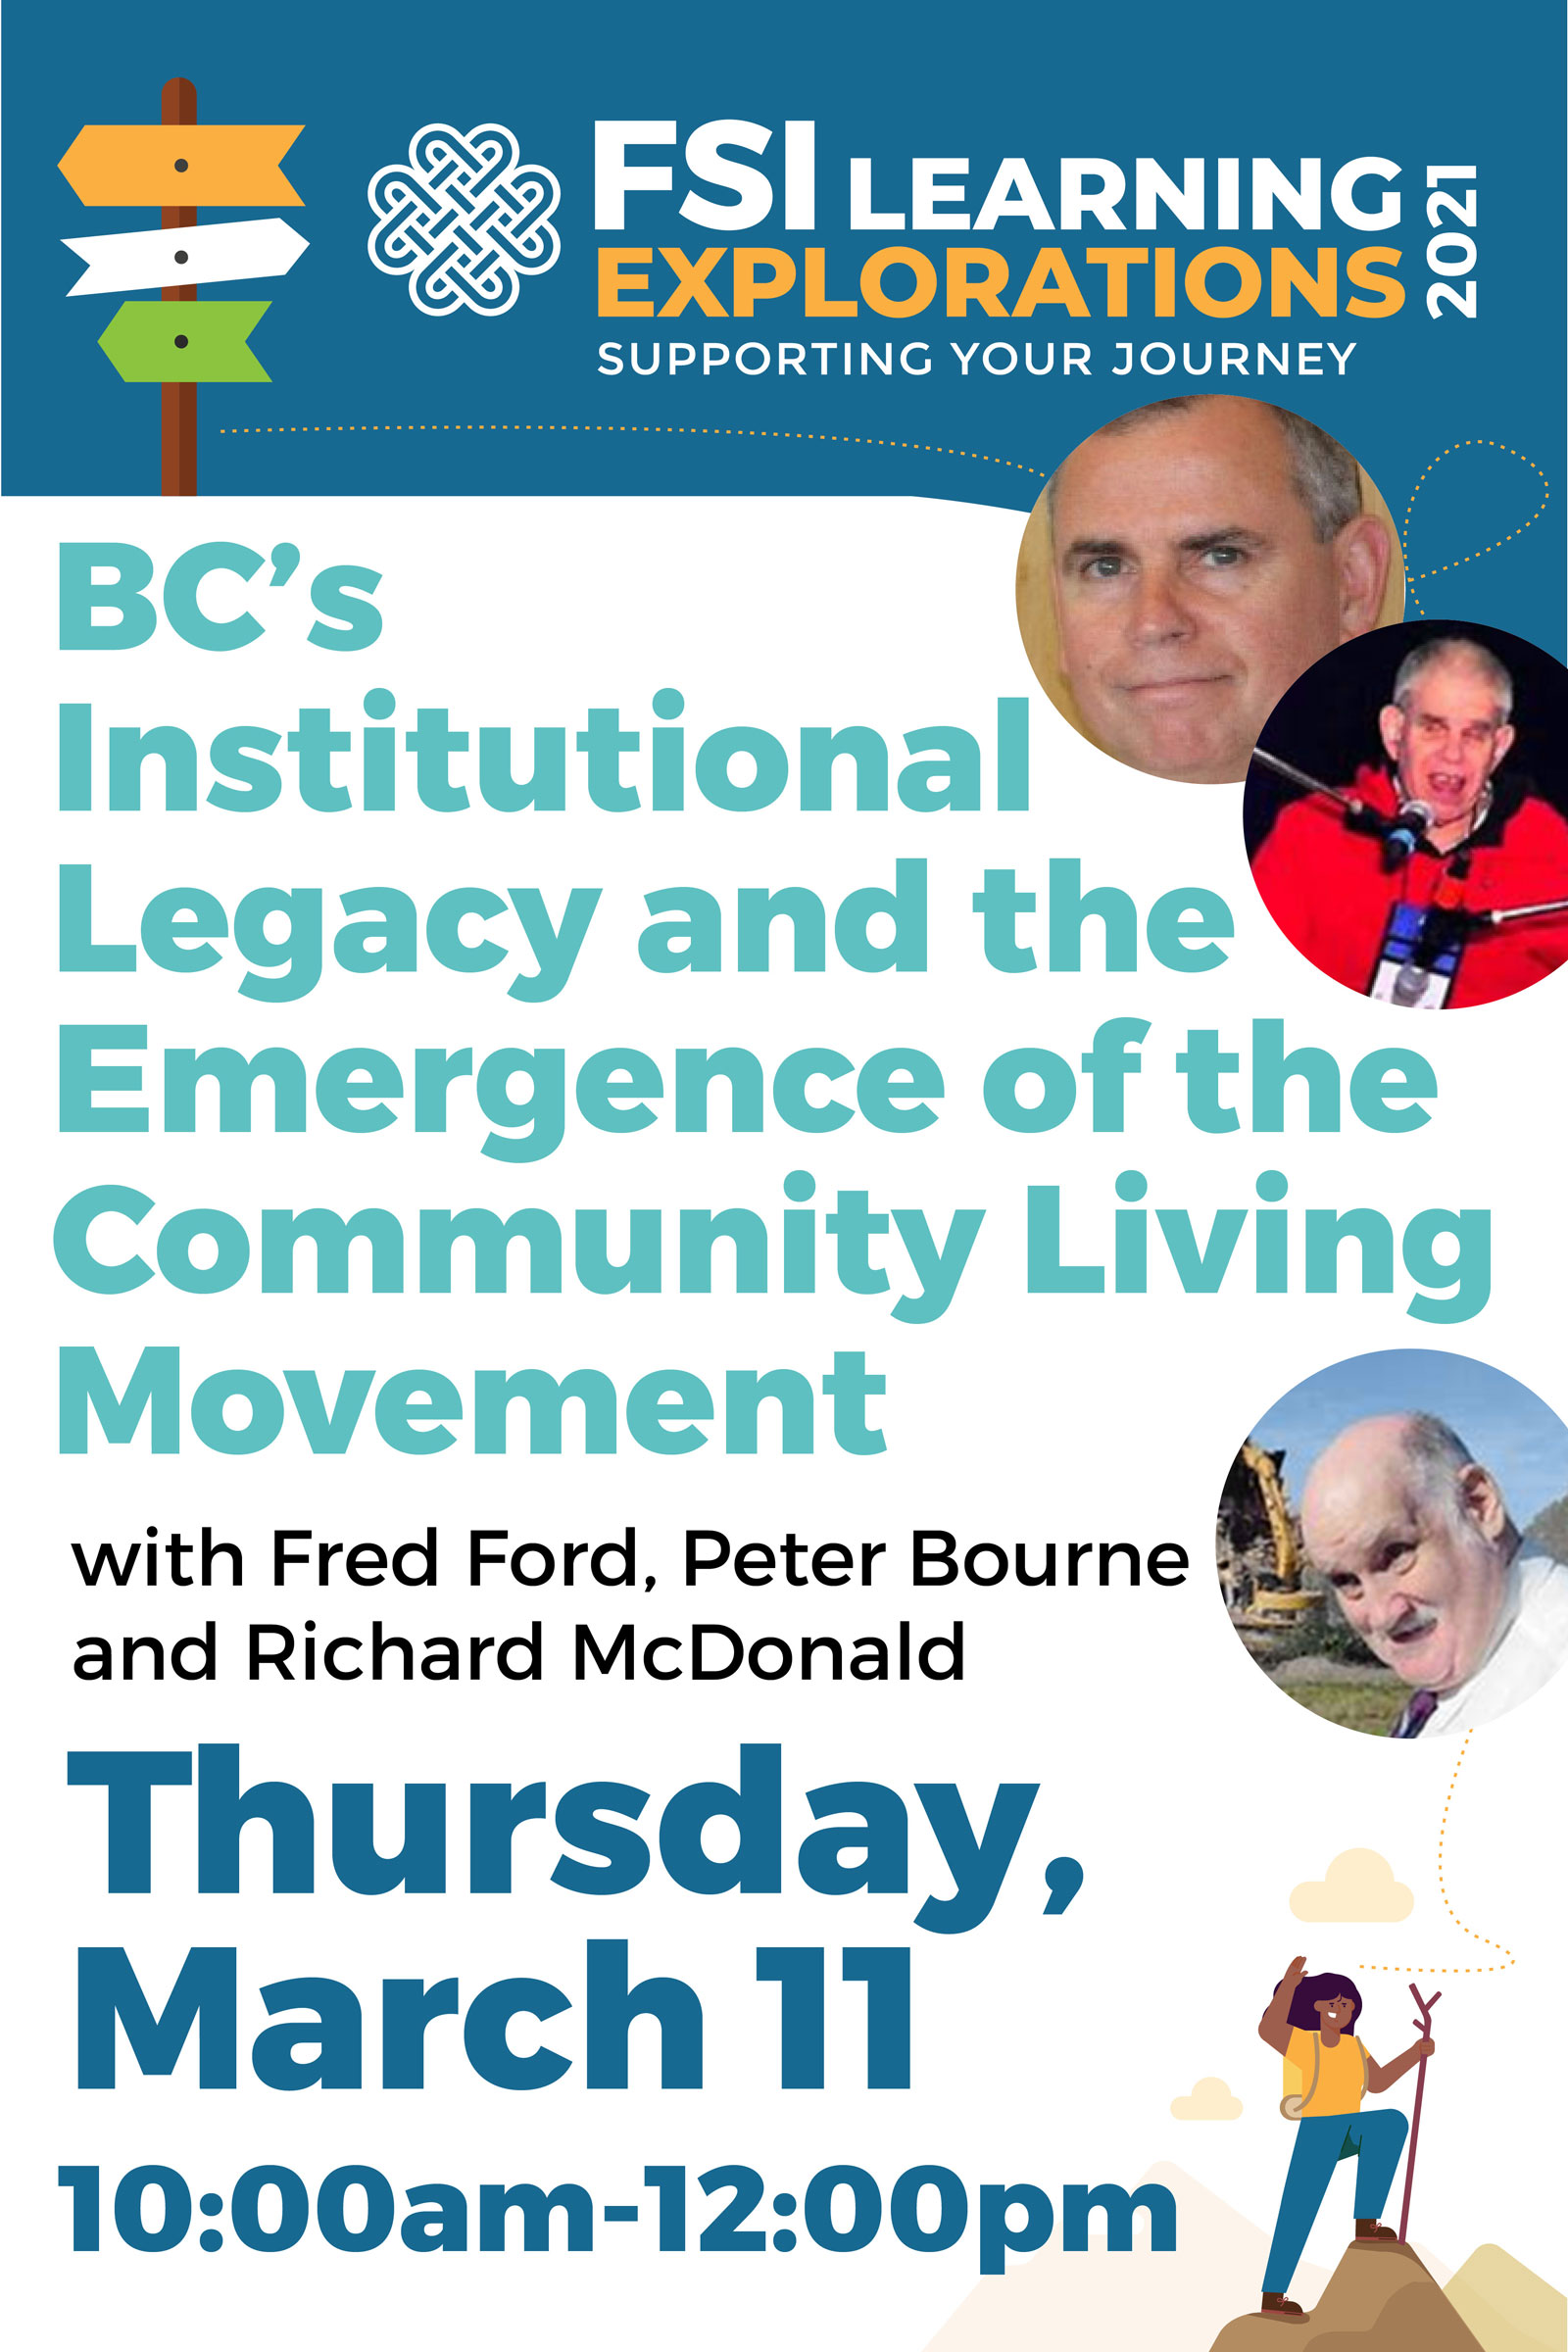 FSI Learning Explorations - BC's Institutional Legacy and the Emergence of the Community Living Movement